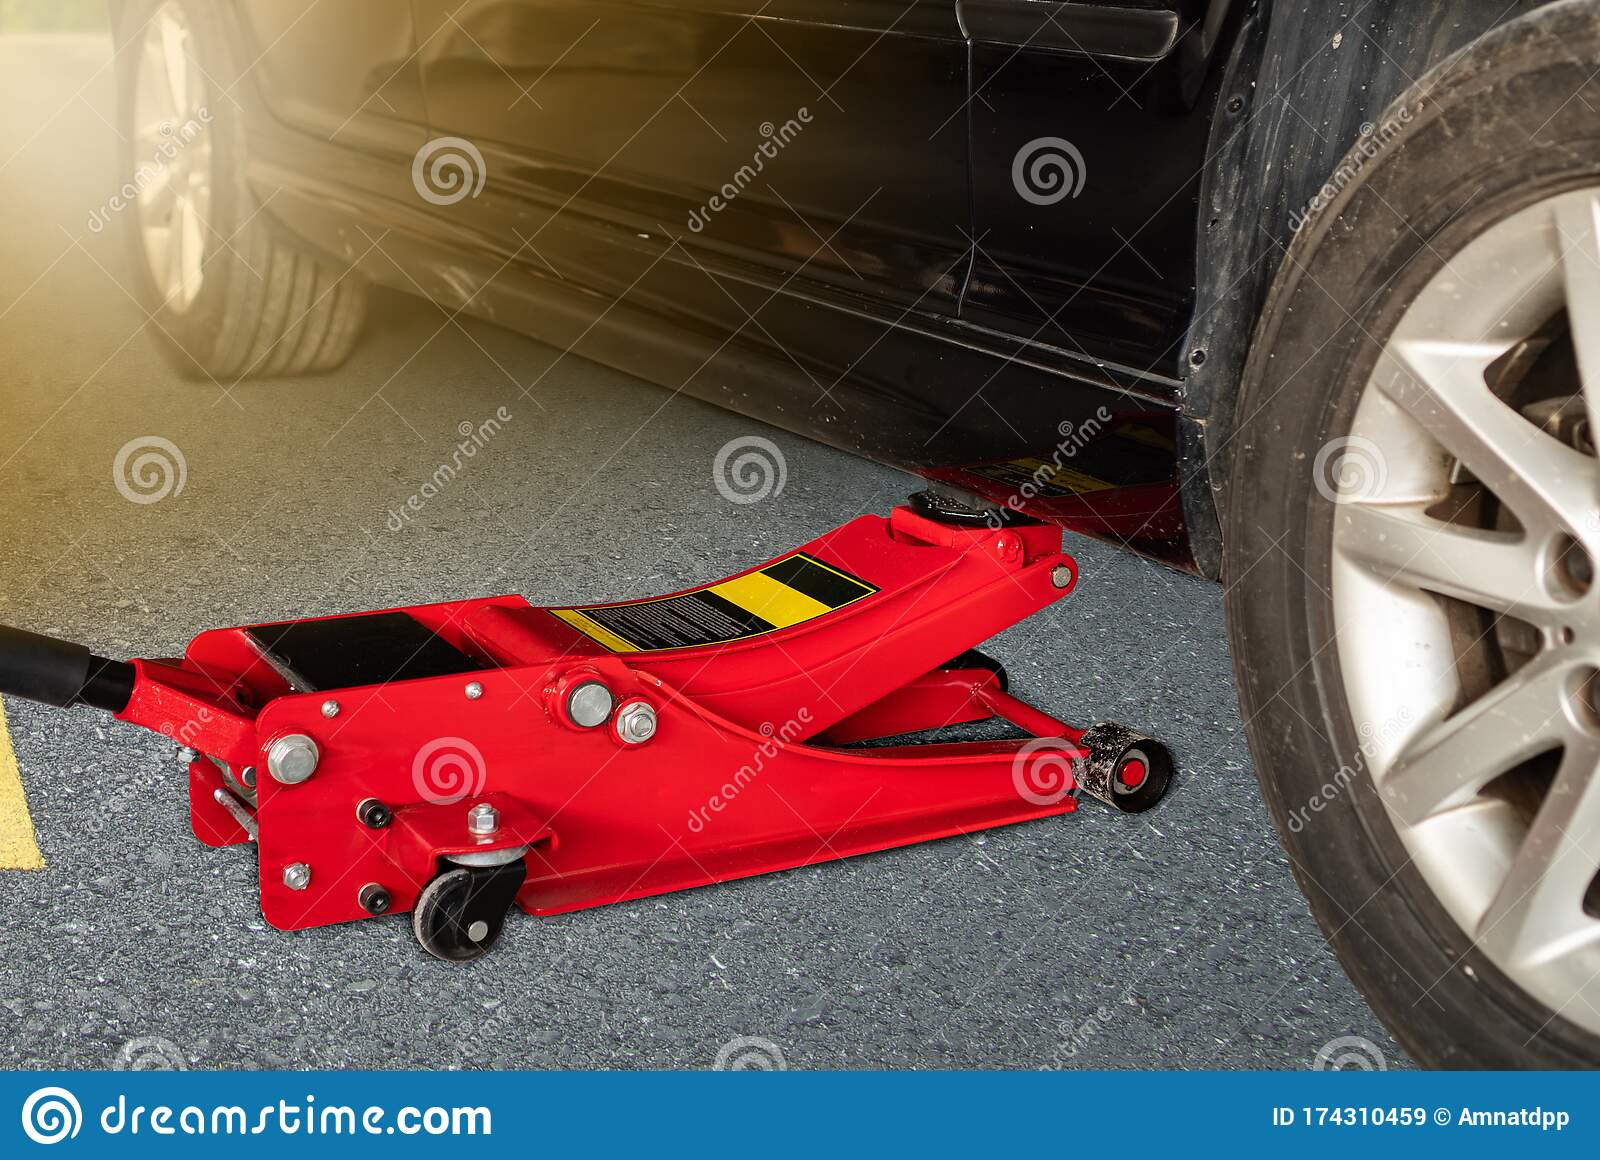 Hydraulic Car Jack To Lift Car For Change The Wheel Stock Image